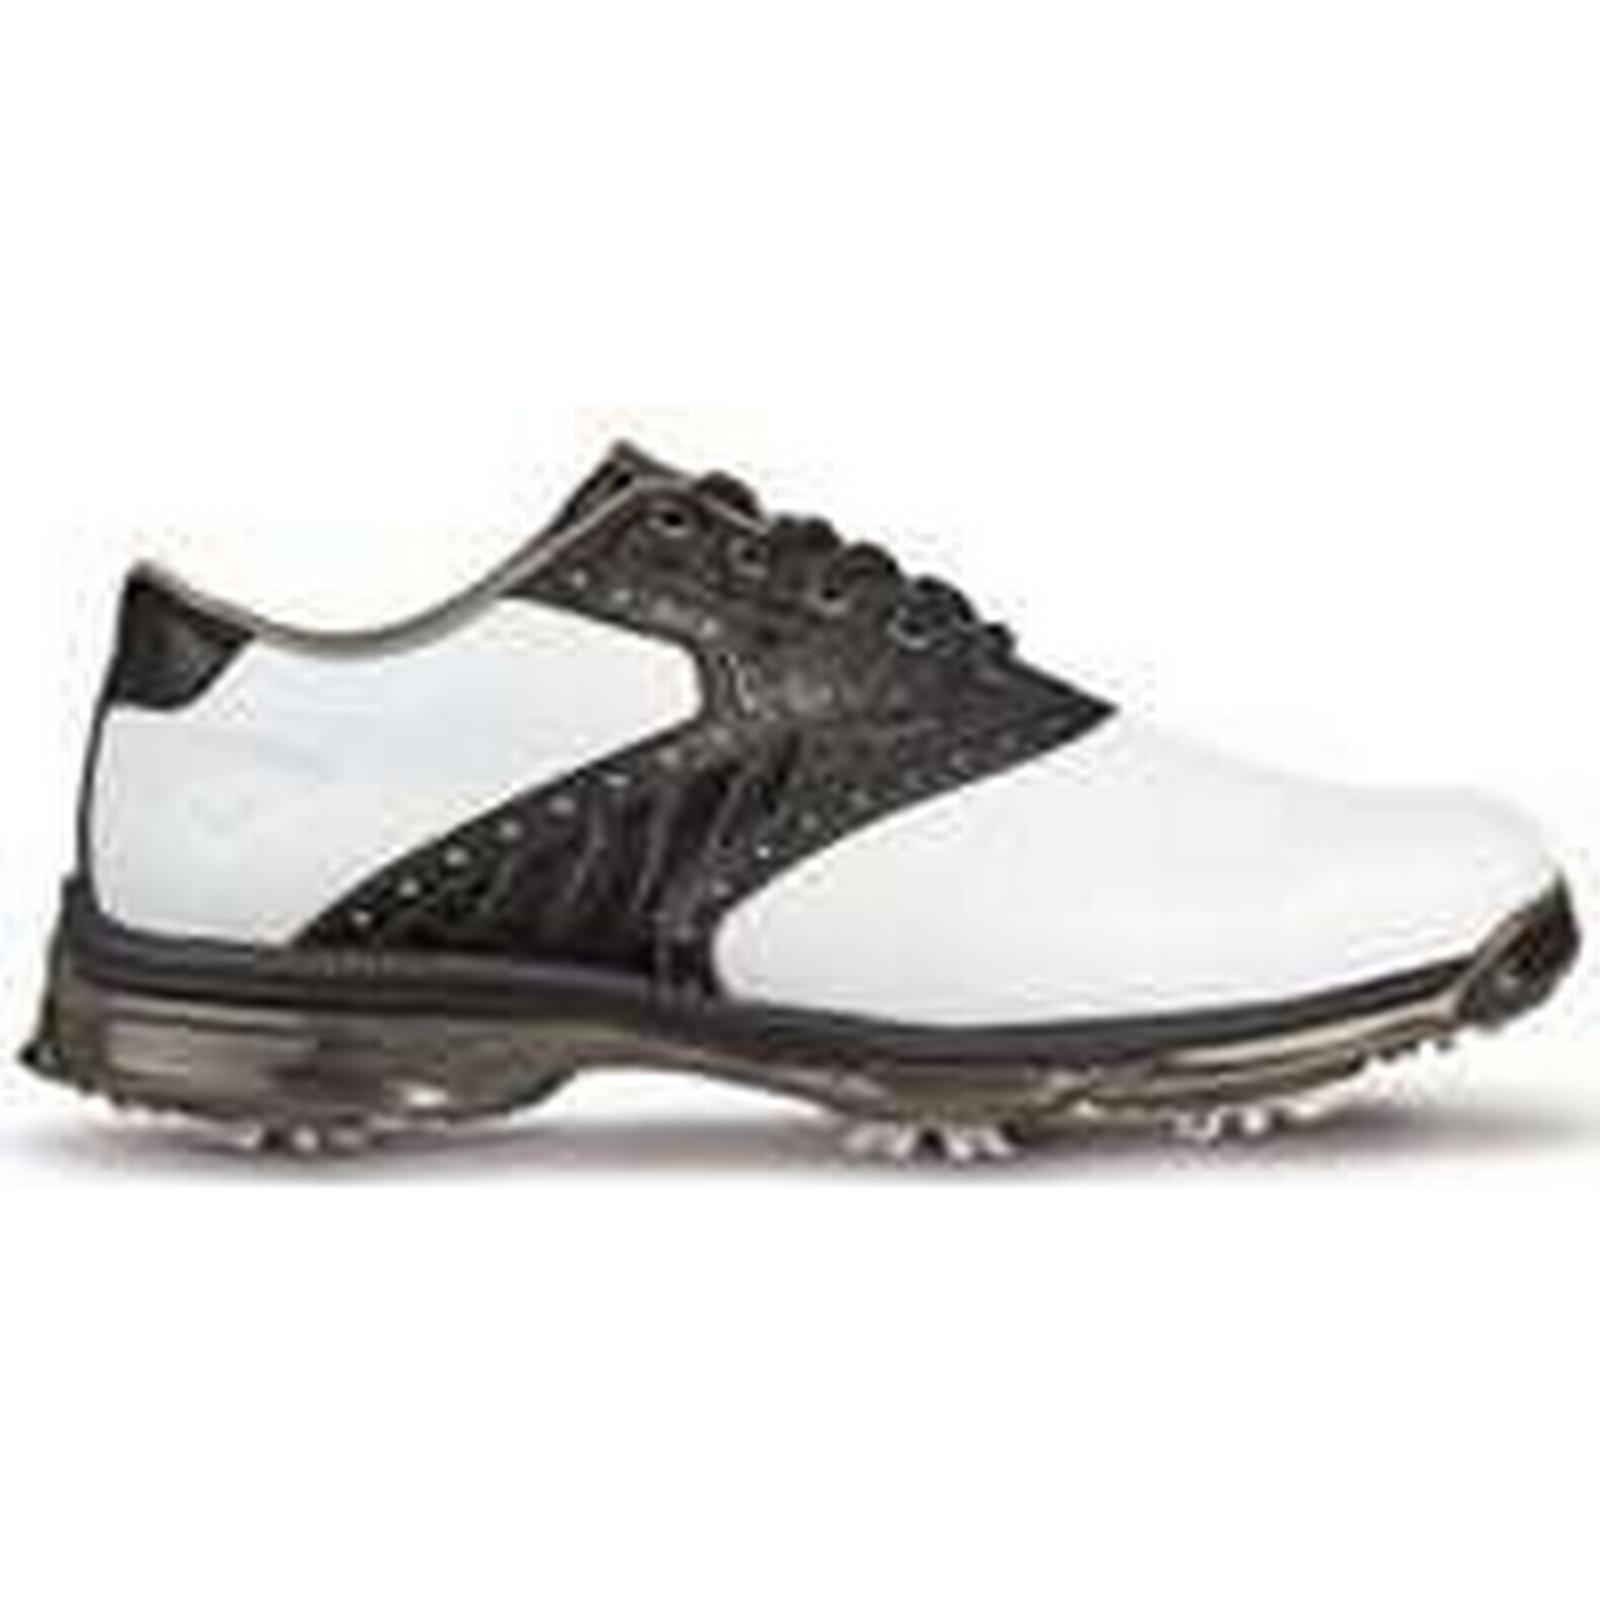 Callaway 2017 X Nitro White/Black PT Golf Shoes - White/Black Nitro f5497b